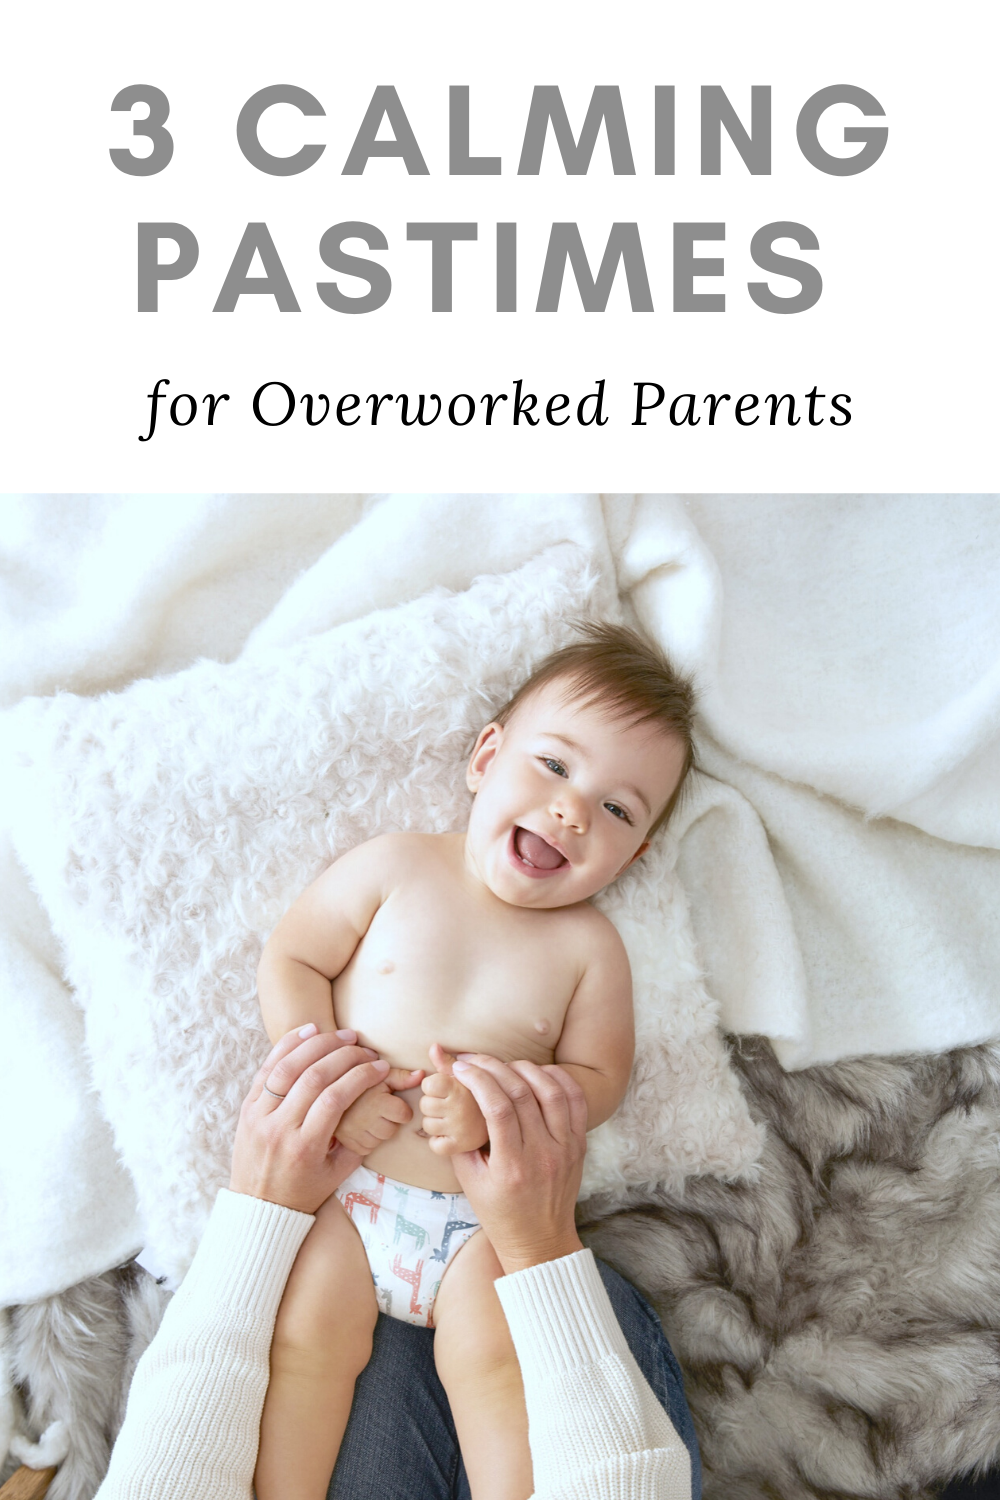 """A smiling baby is being tickled by his mom, it is a top view looking down at the baby. He lies on blankets. A banner above reads, """"3 calming pastimes for overworked parents."""""""